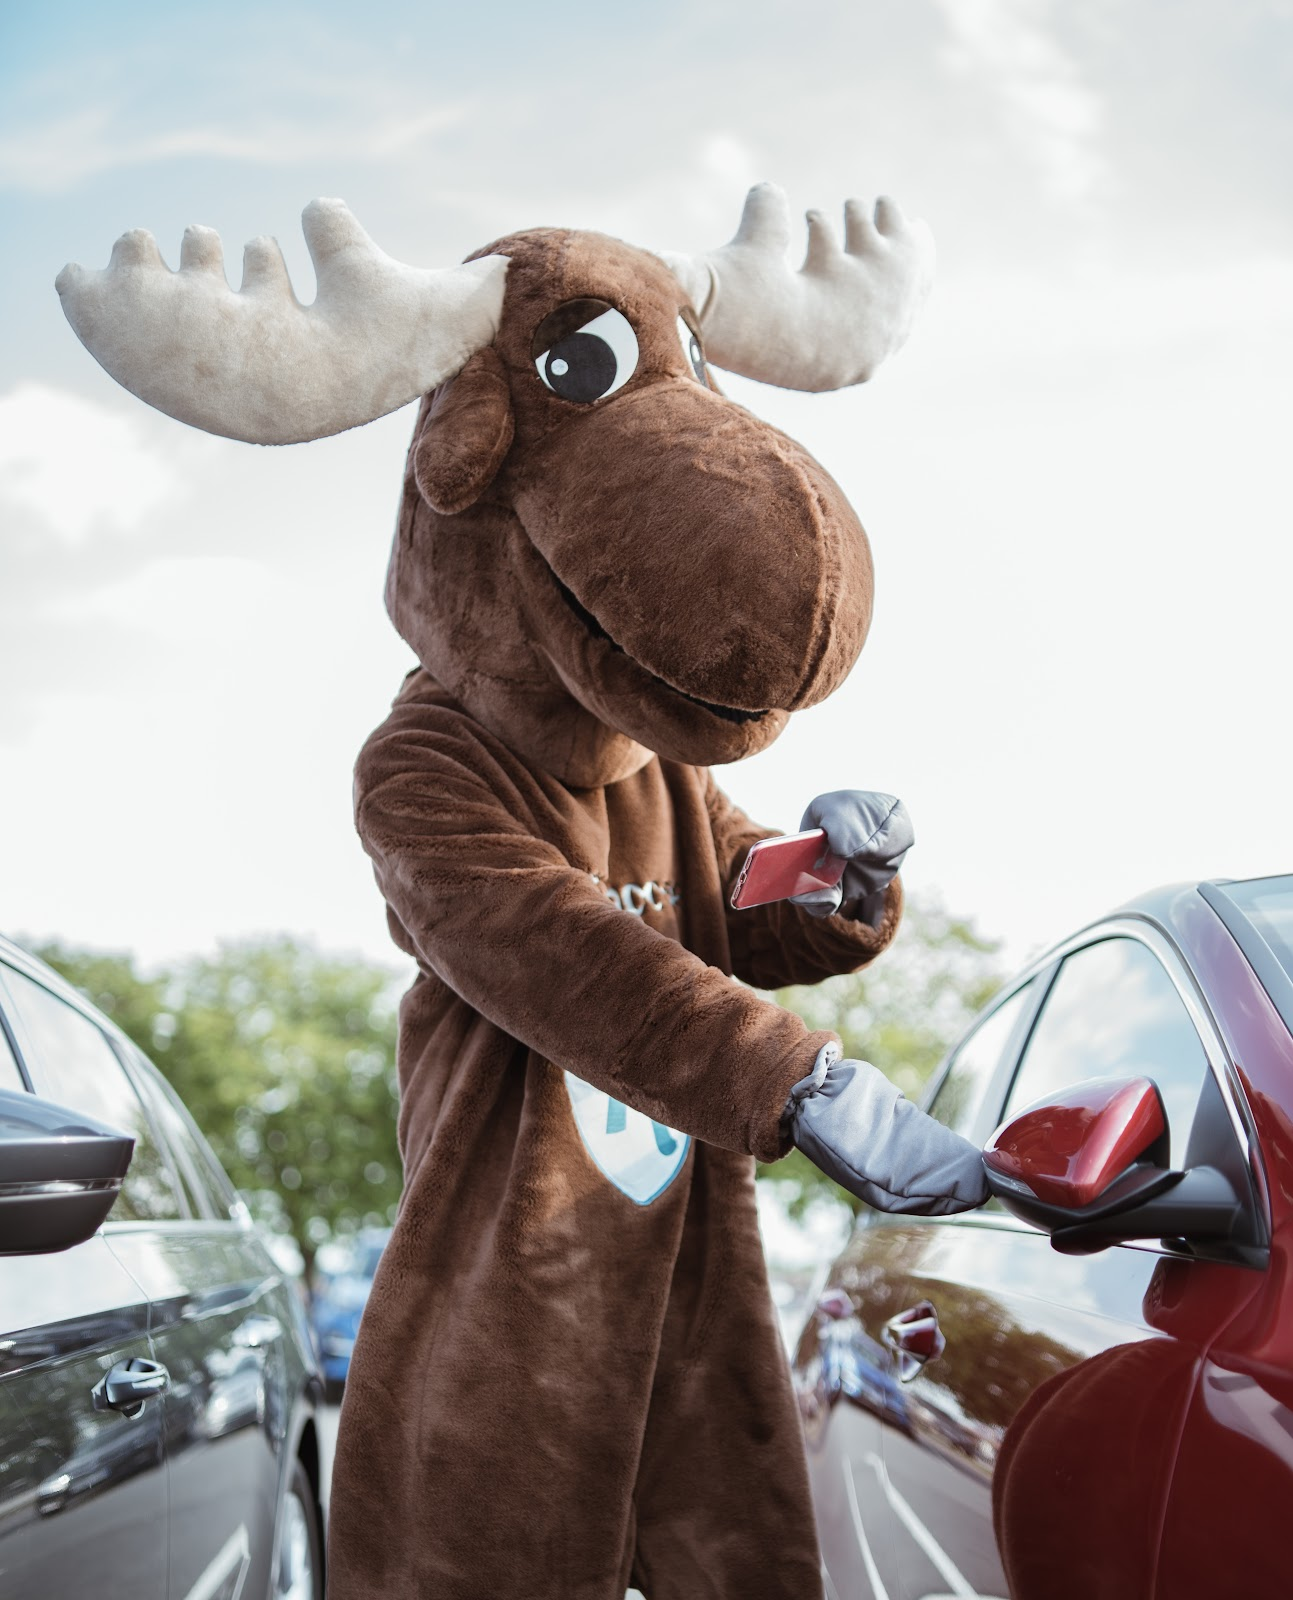 Rental Moose mascot is photographing the condition of the red Kia rental car. It is crucial to document the damage on a rental car before driving away.